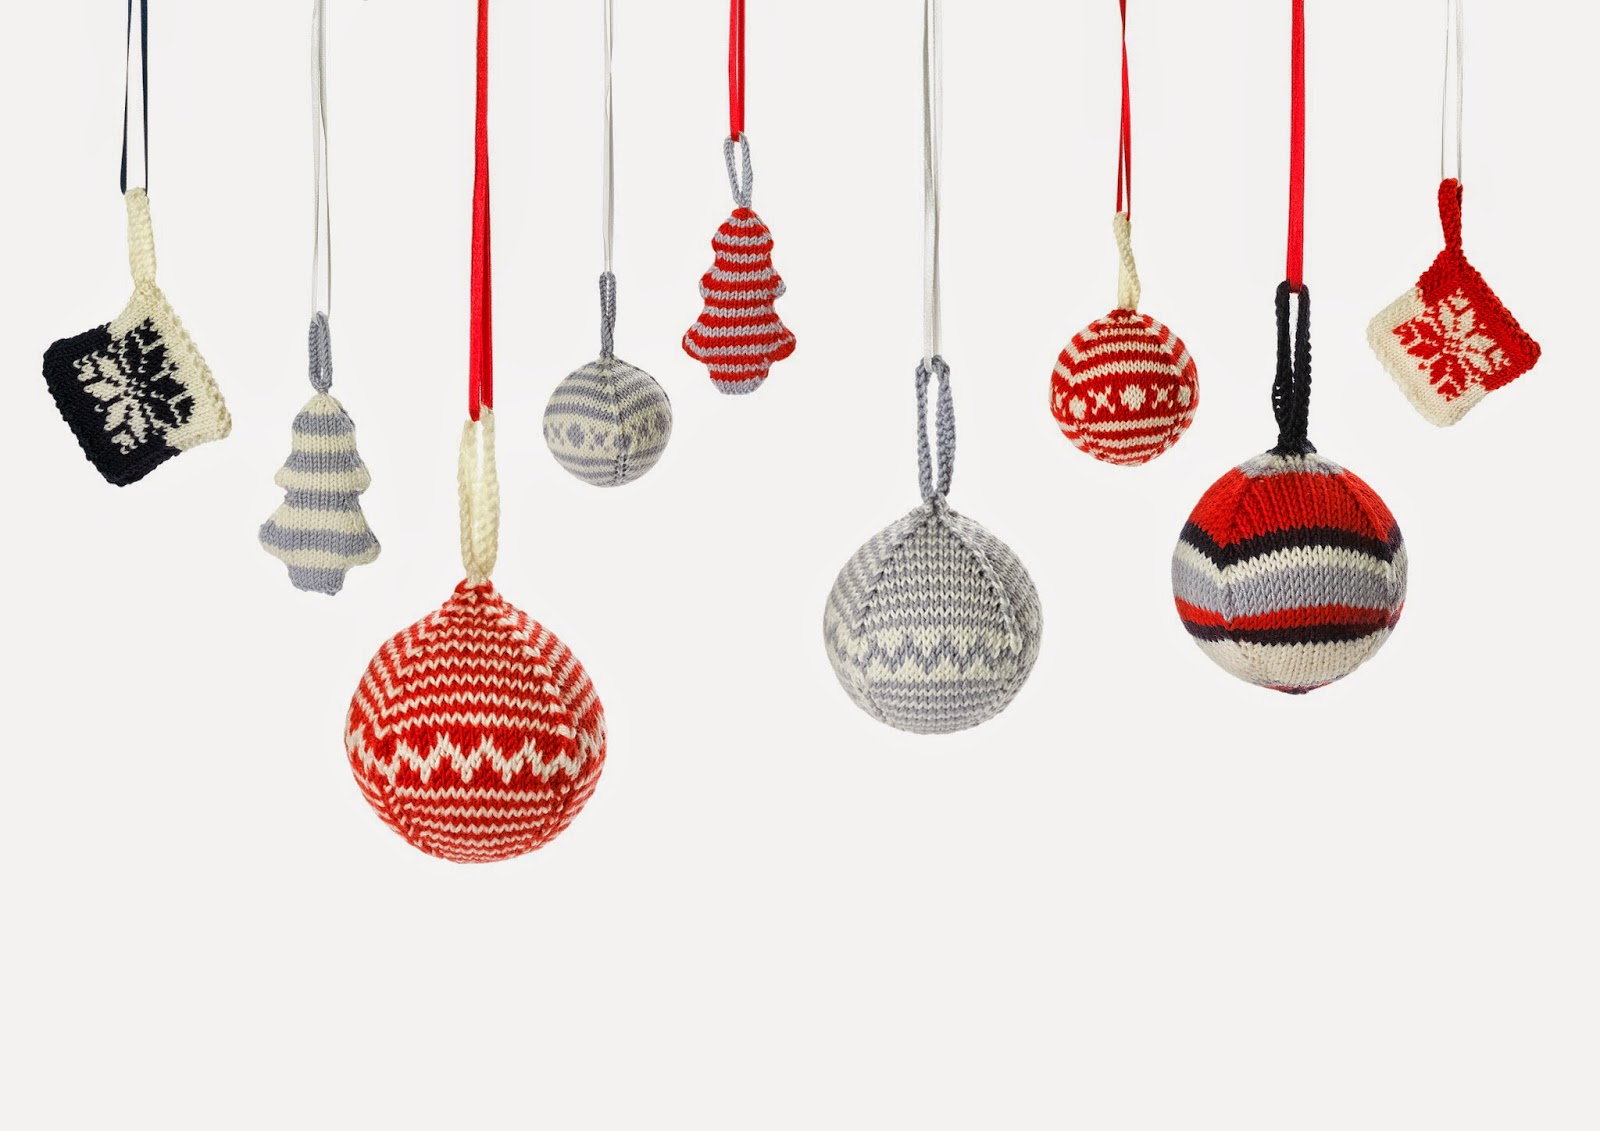 How to read the patterns of baubles